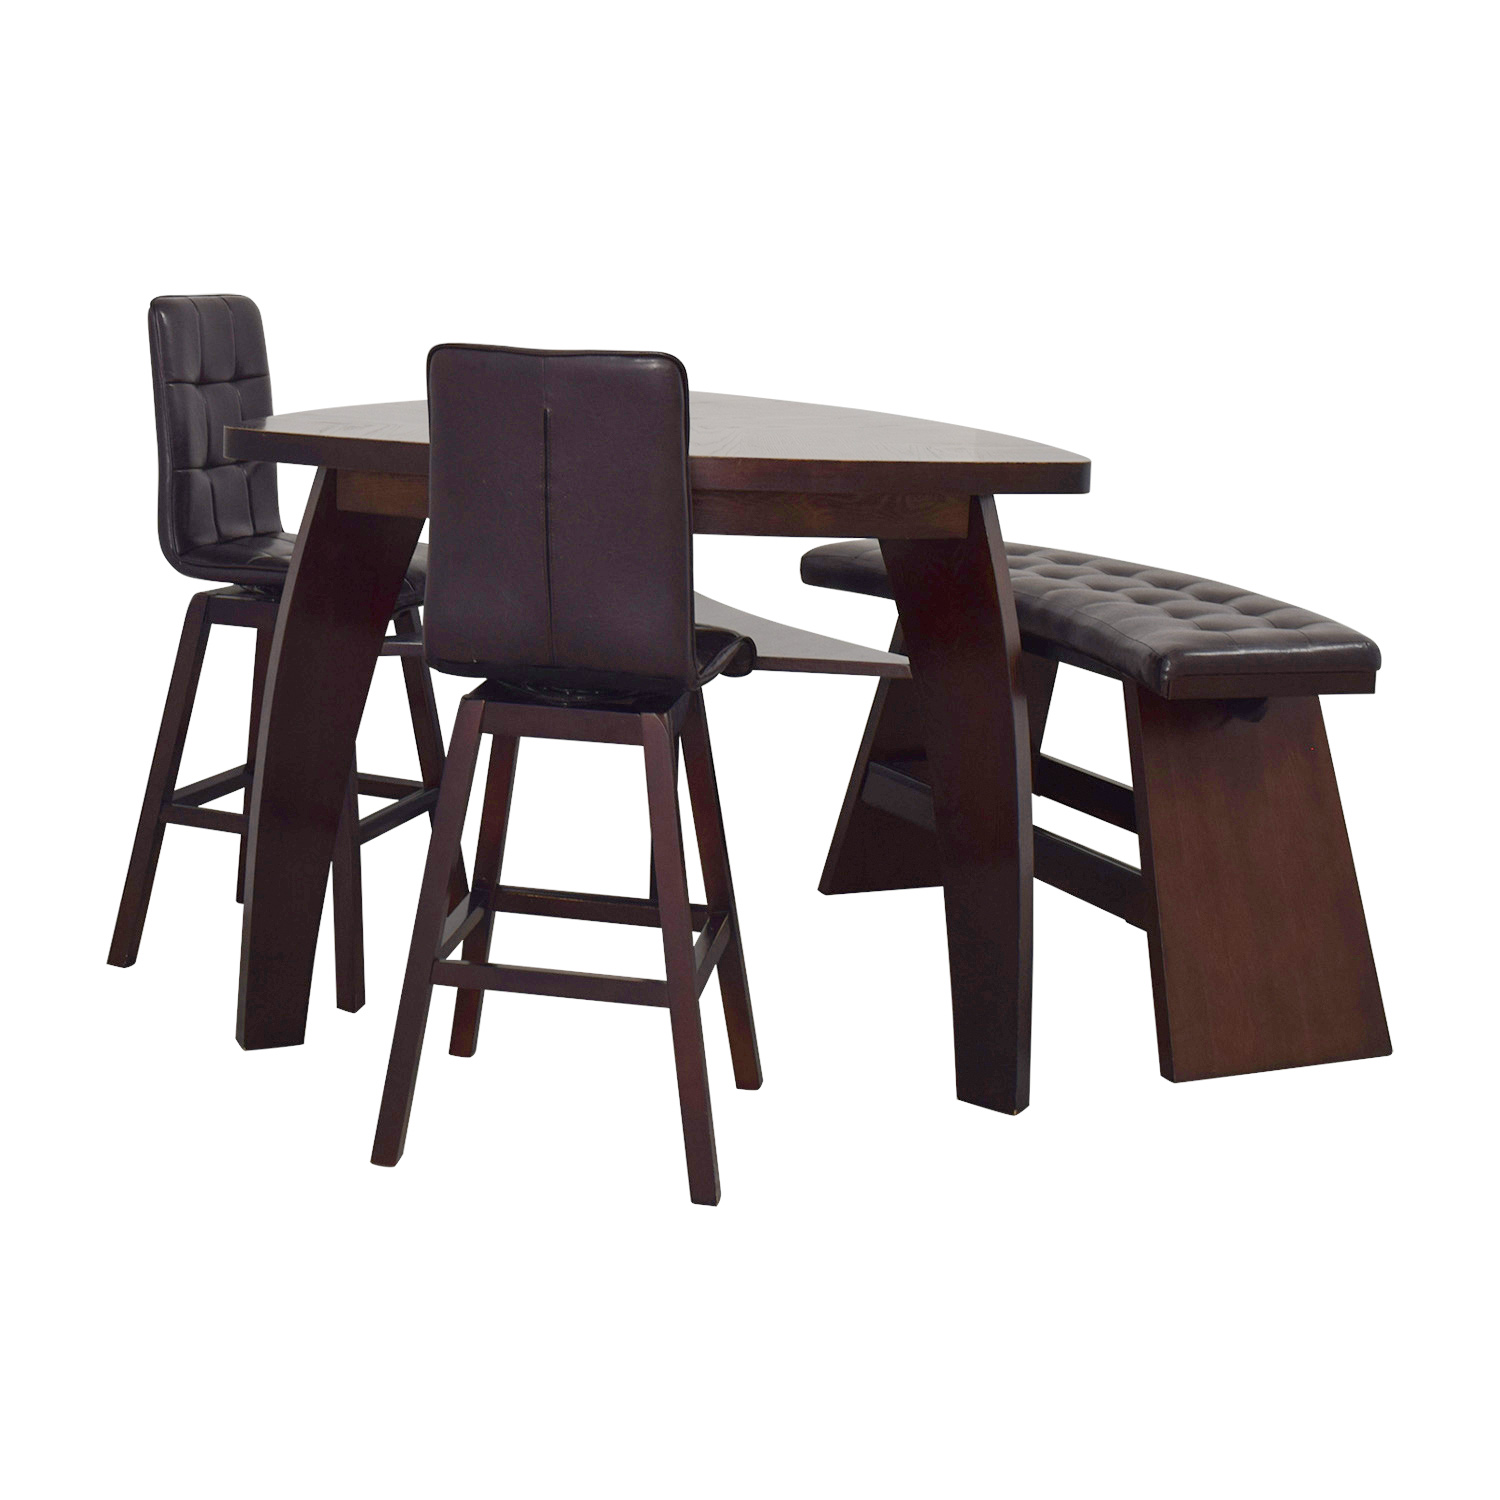 Bar Stools And Table Set Boomerang Dining Table Set Dining Room Ideas